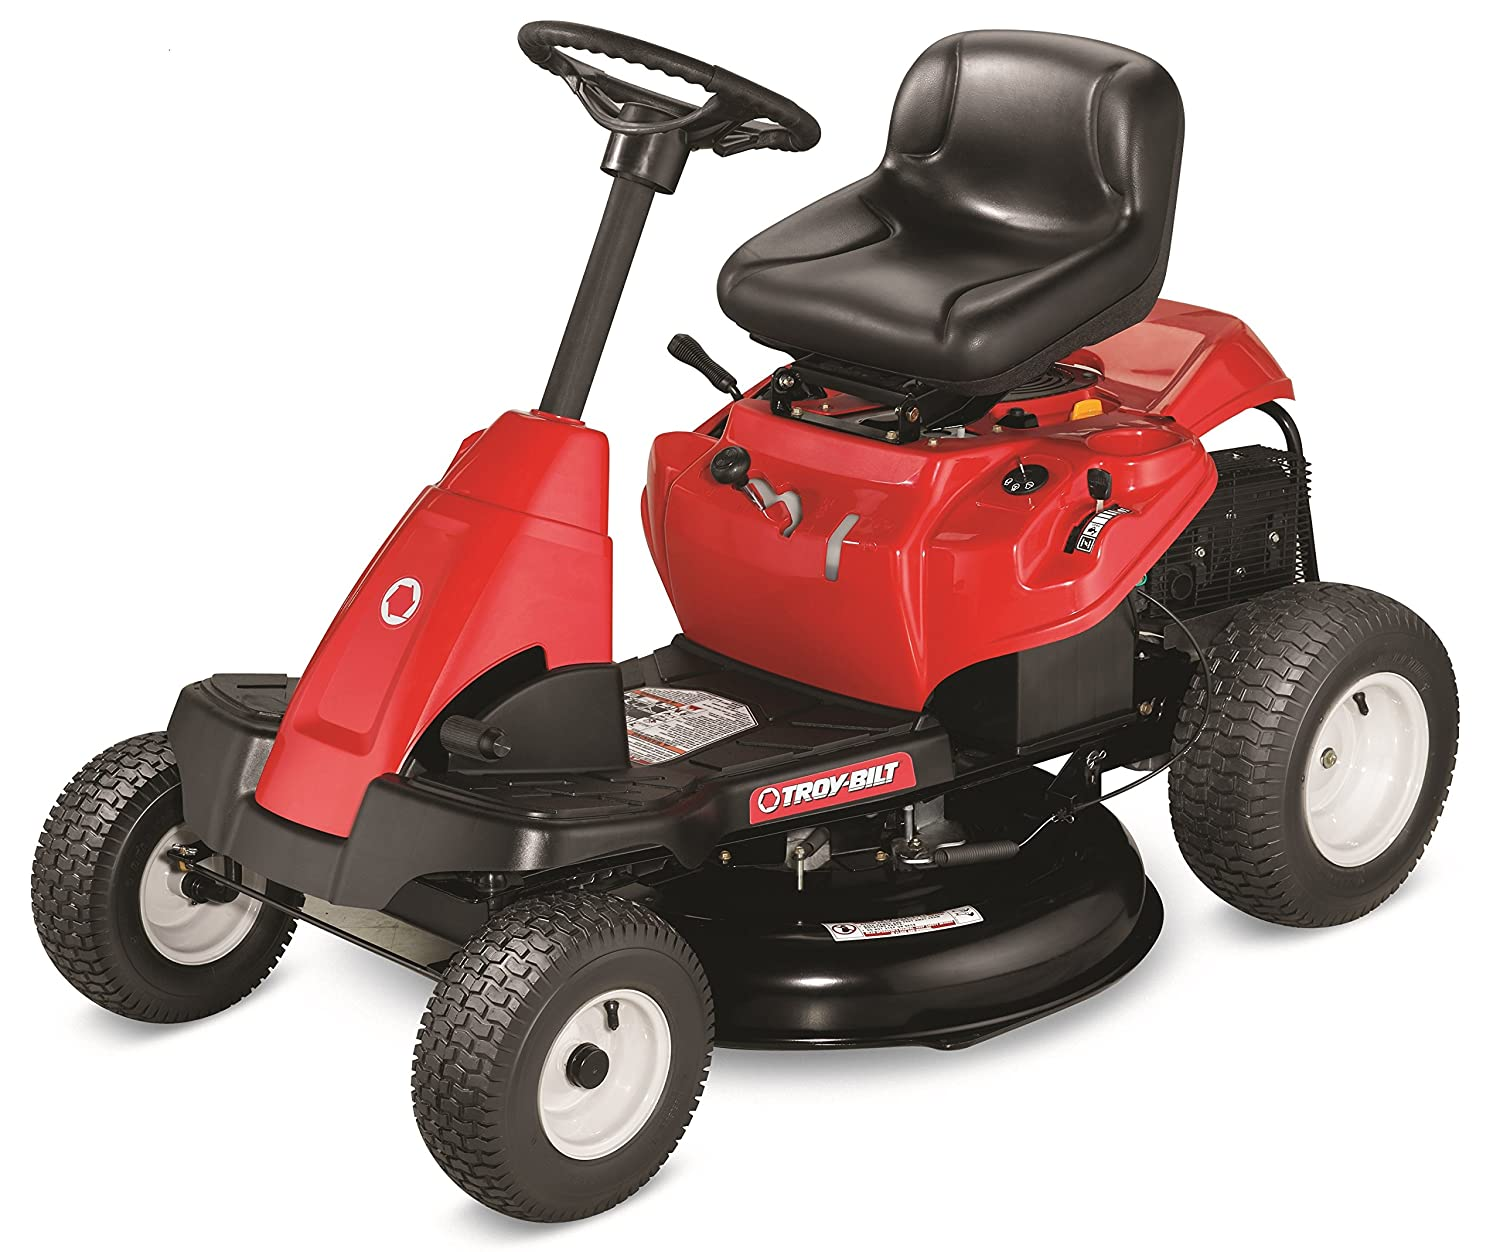 Best lawn mower -  Troy-Bilt 30-Inch Neighborhood Riding Lawn Mower